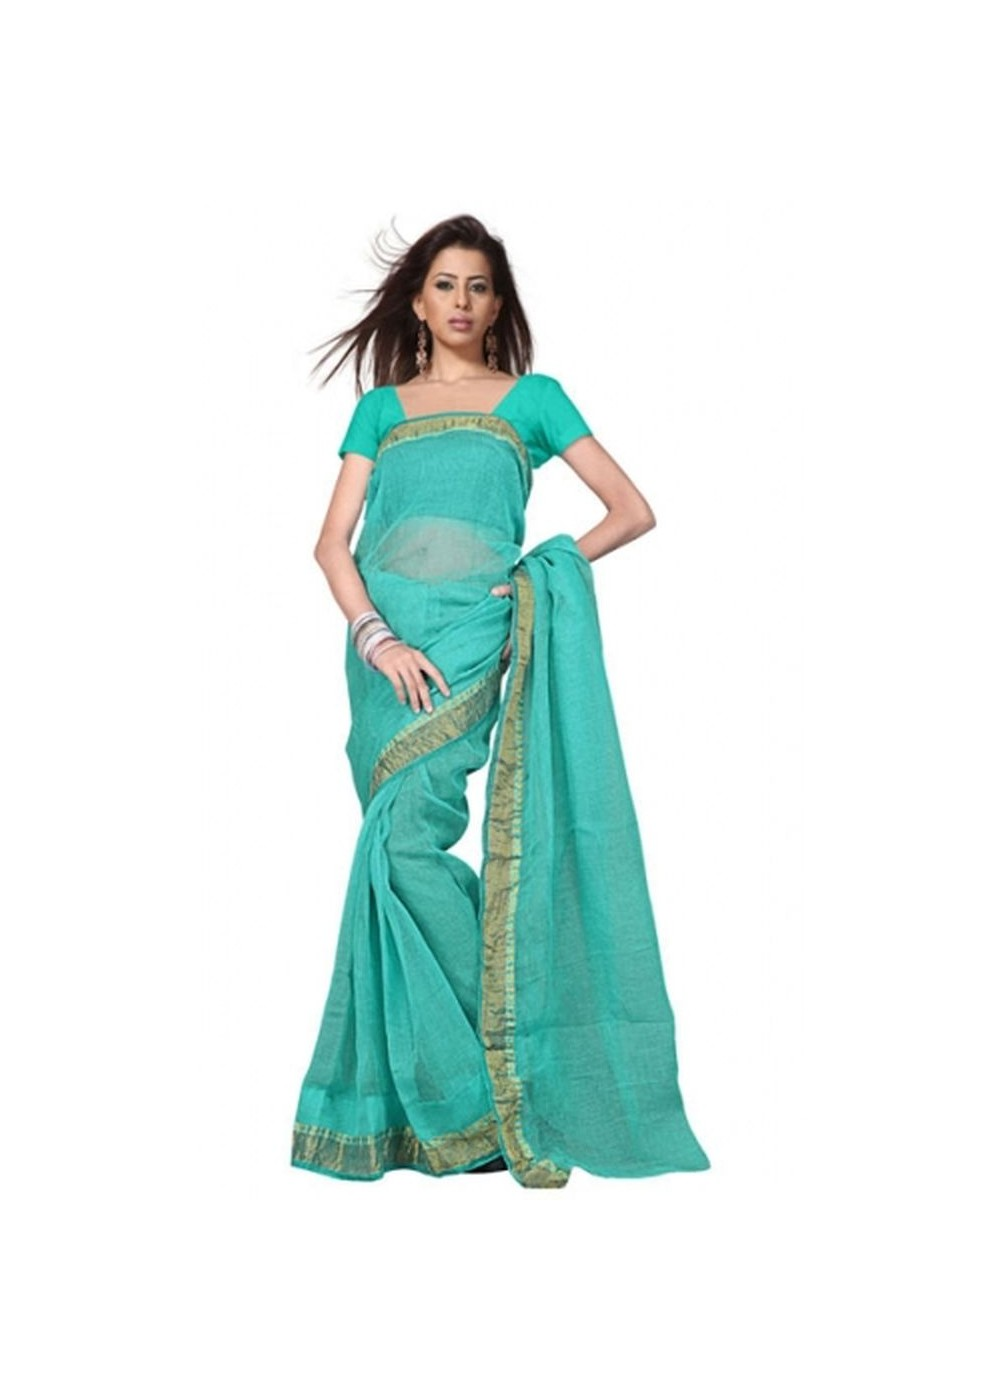 Rajasthani Kota Doria Teal Saree International Costumes